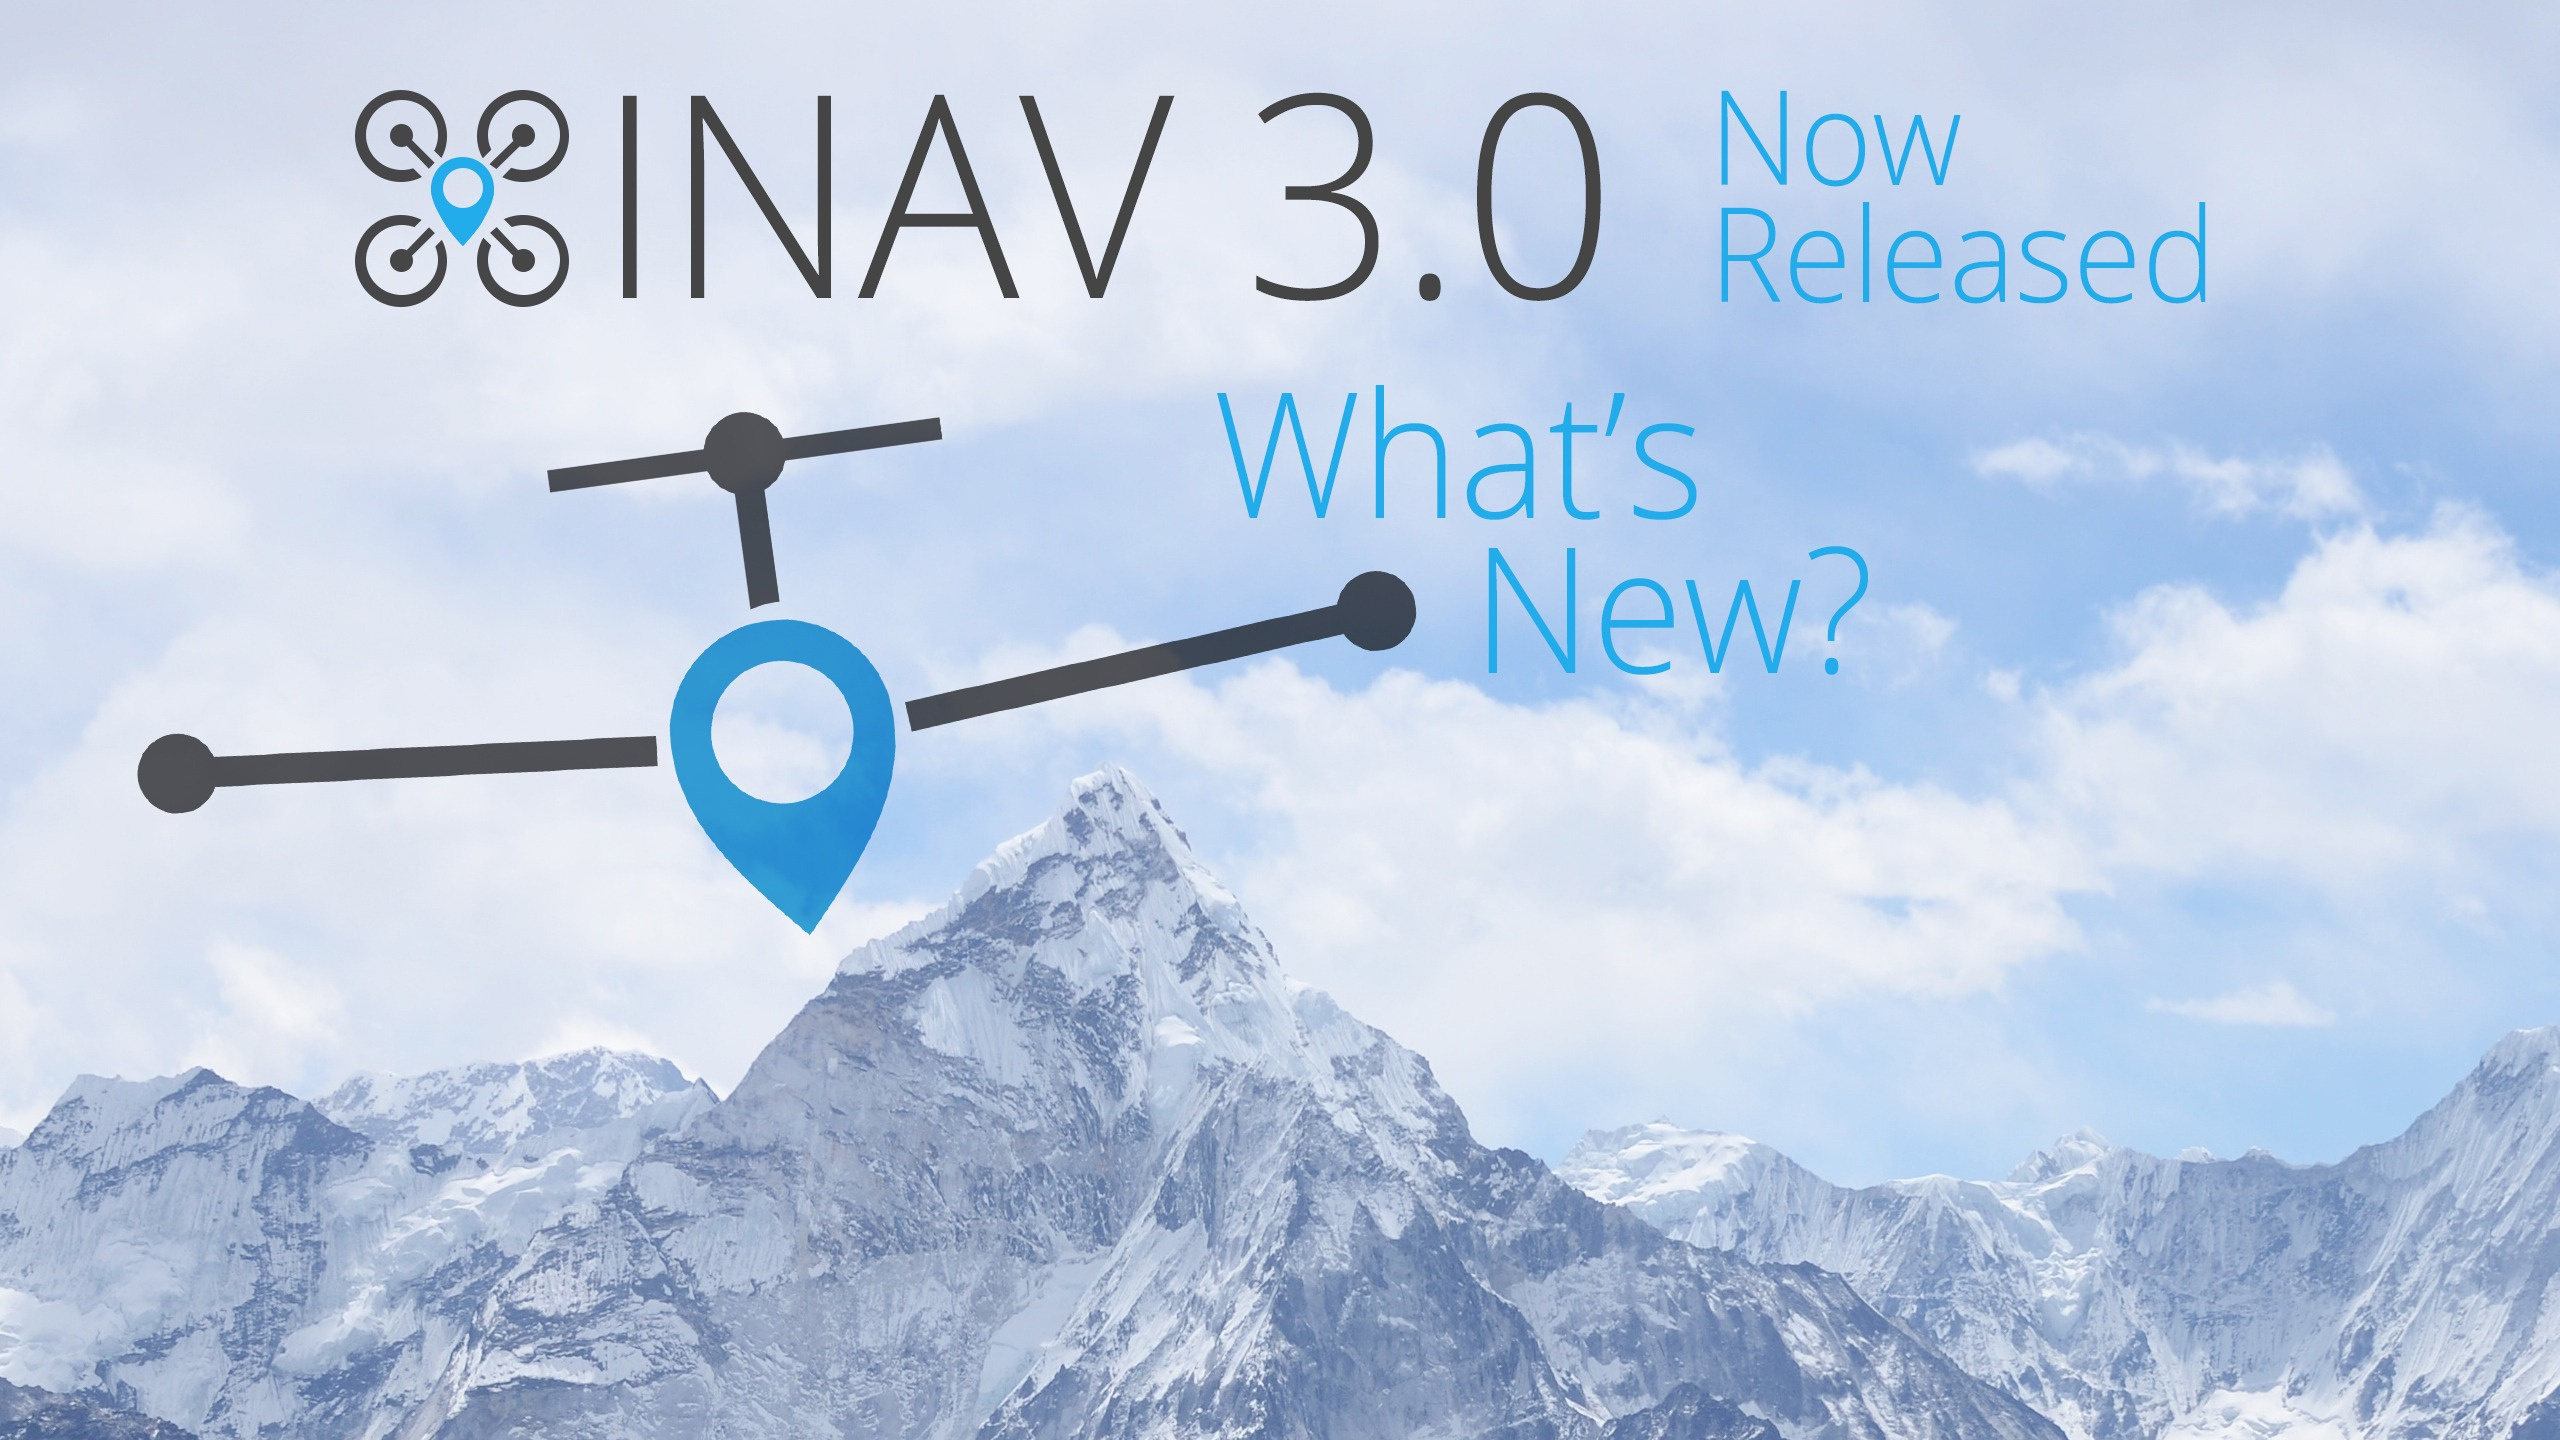 What's new in iNav 3.0